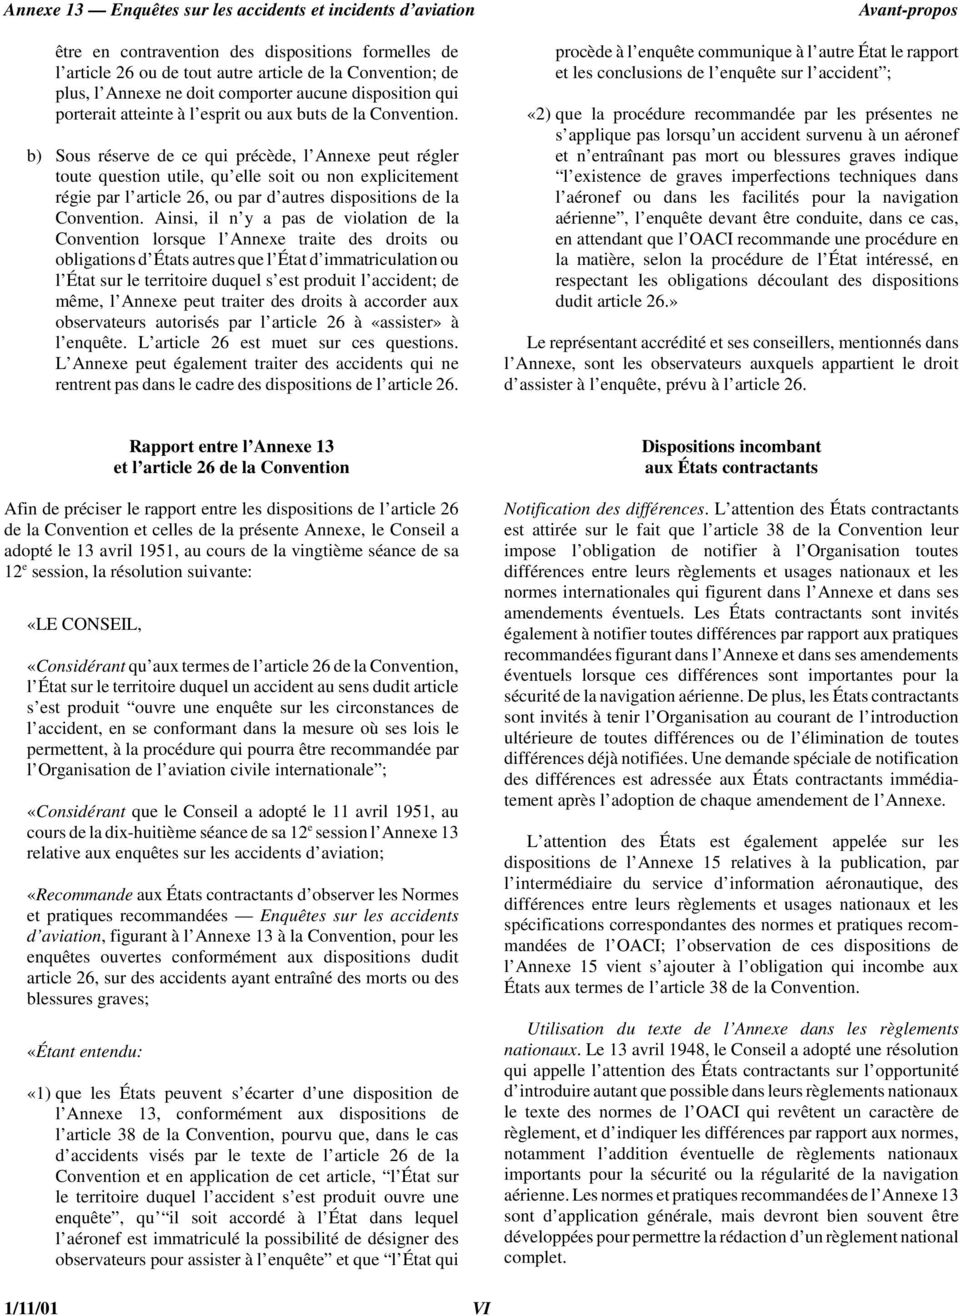 b) Sous réserve de ce qui précède, l Annexe peut régler toute question utile, qu elle soit ou non explicitement régie par l article 26, ou par d autres dispositions de la Convention.